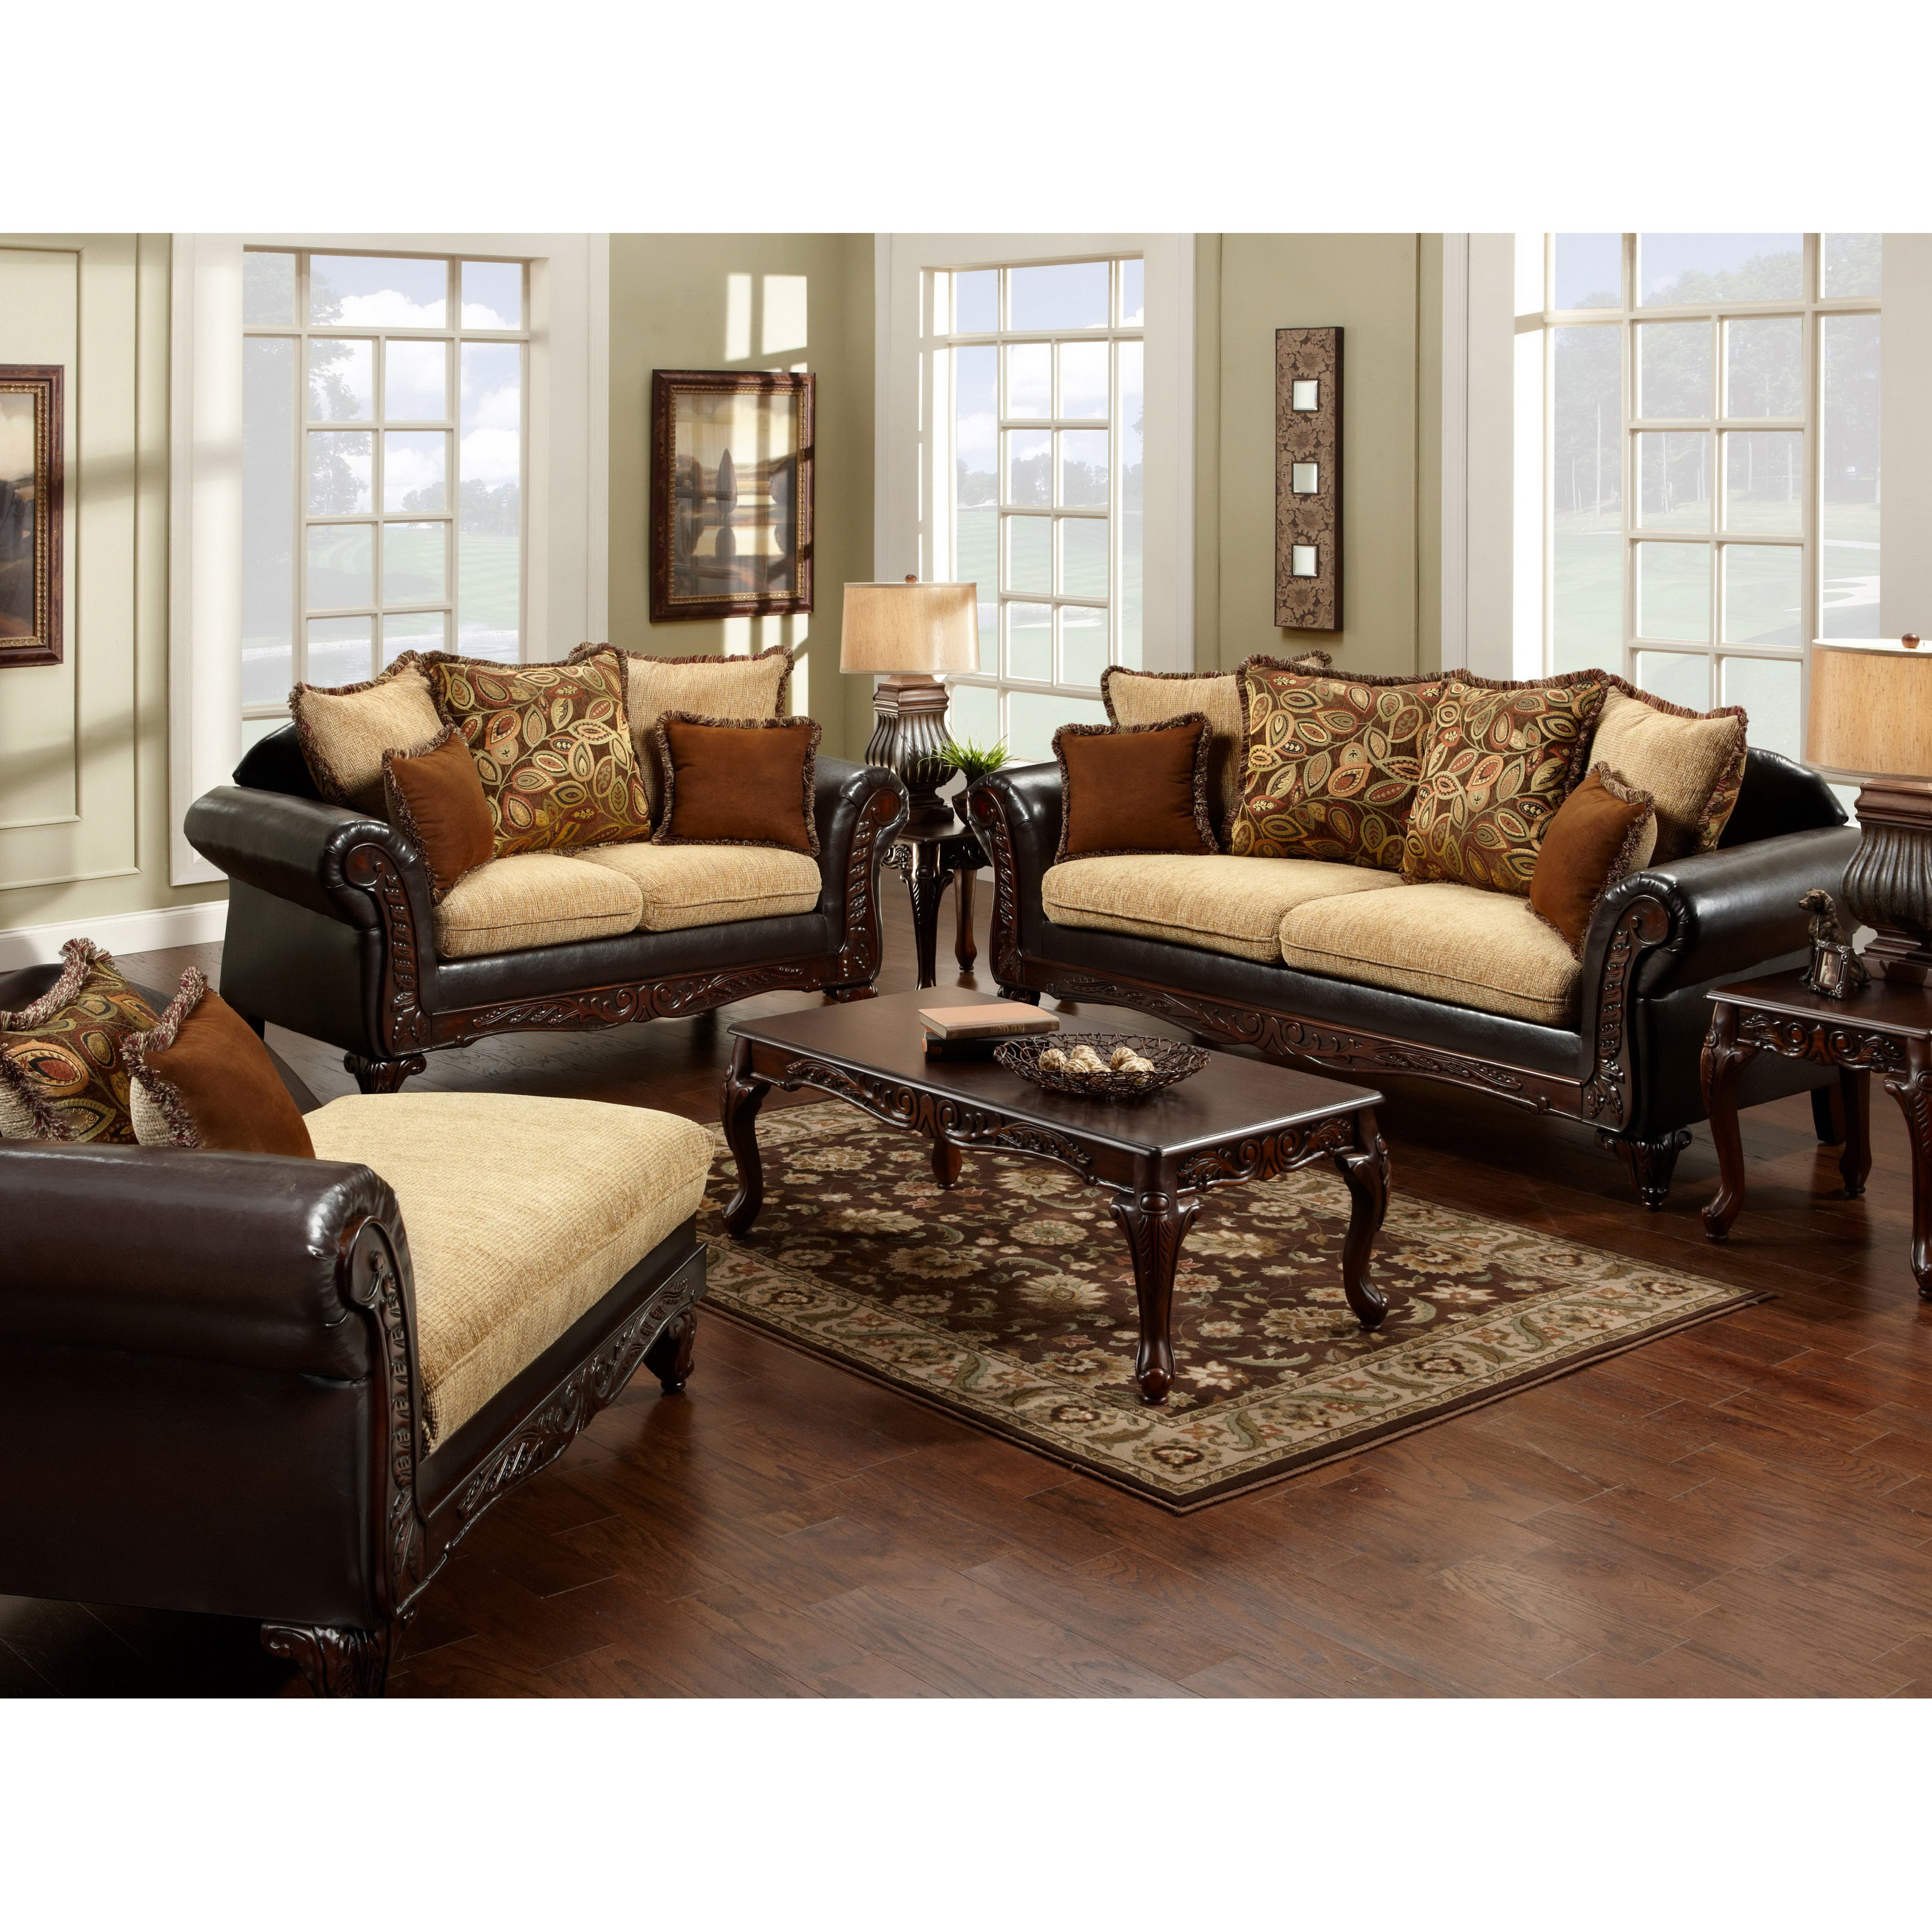 Furniture of america 39 nicolai 39 2 piece sofa set for Sofa set deals